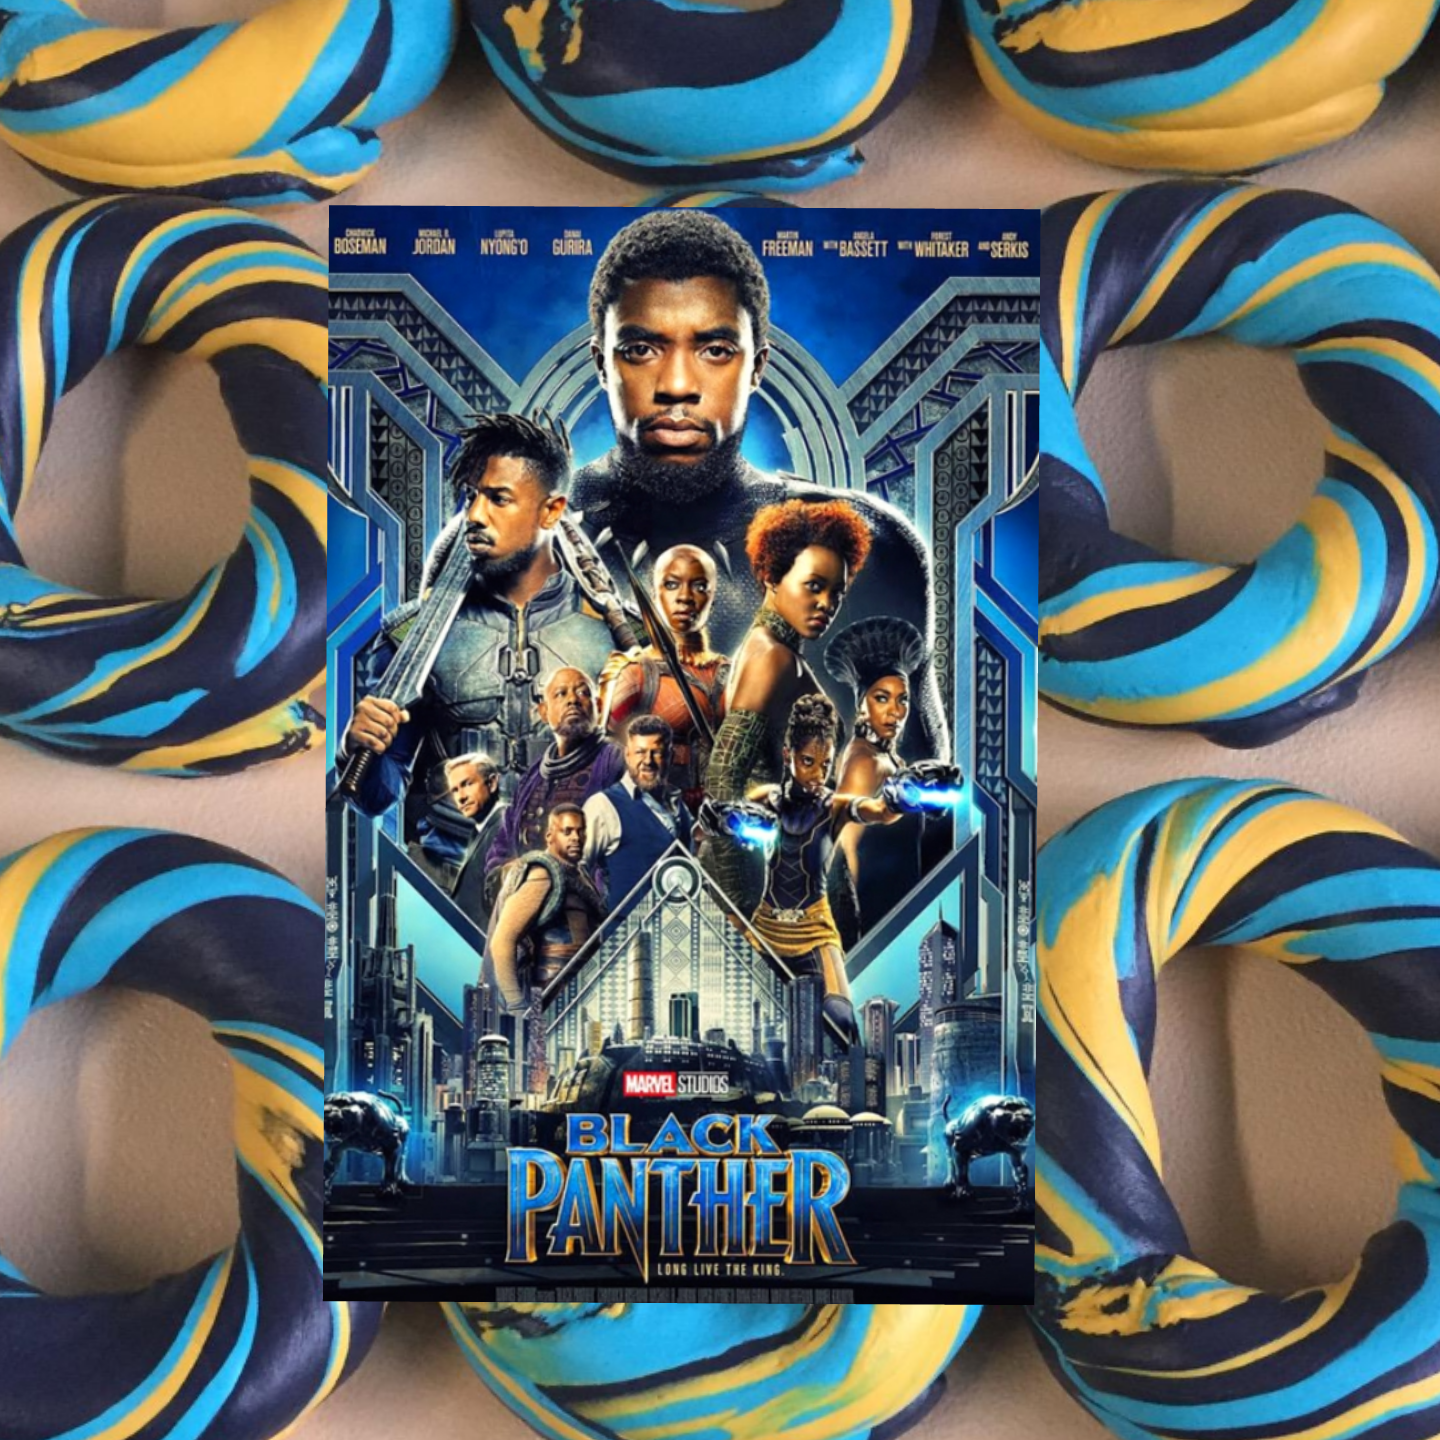 black panther movie custom bagel art